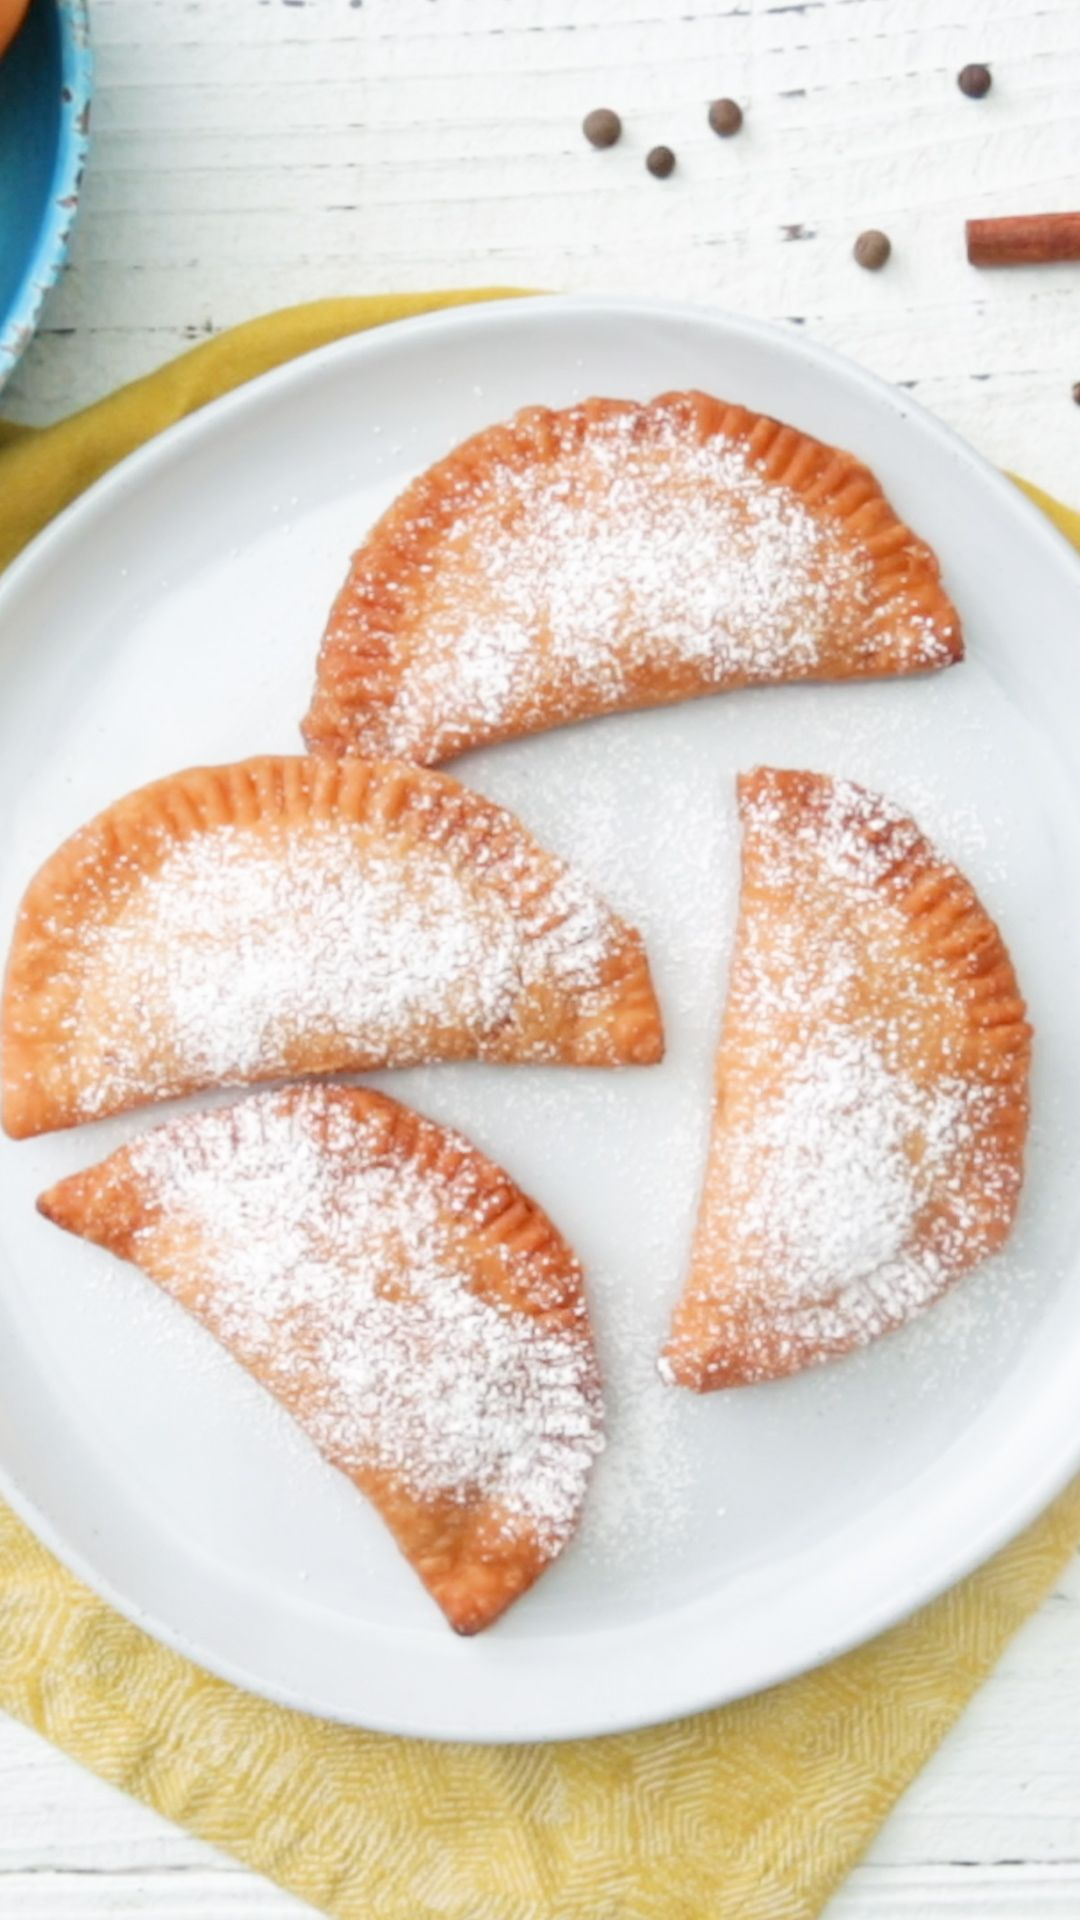 That perfect combination of peaches and cream is made better when fried in a crispy empanada.